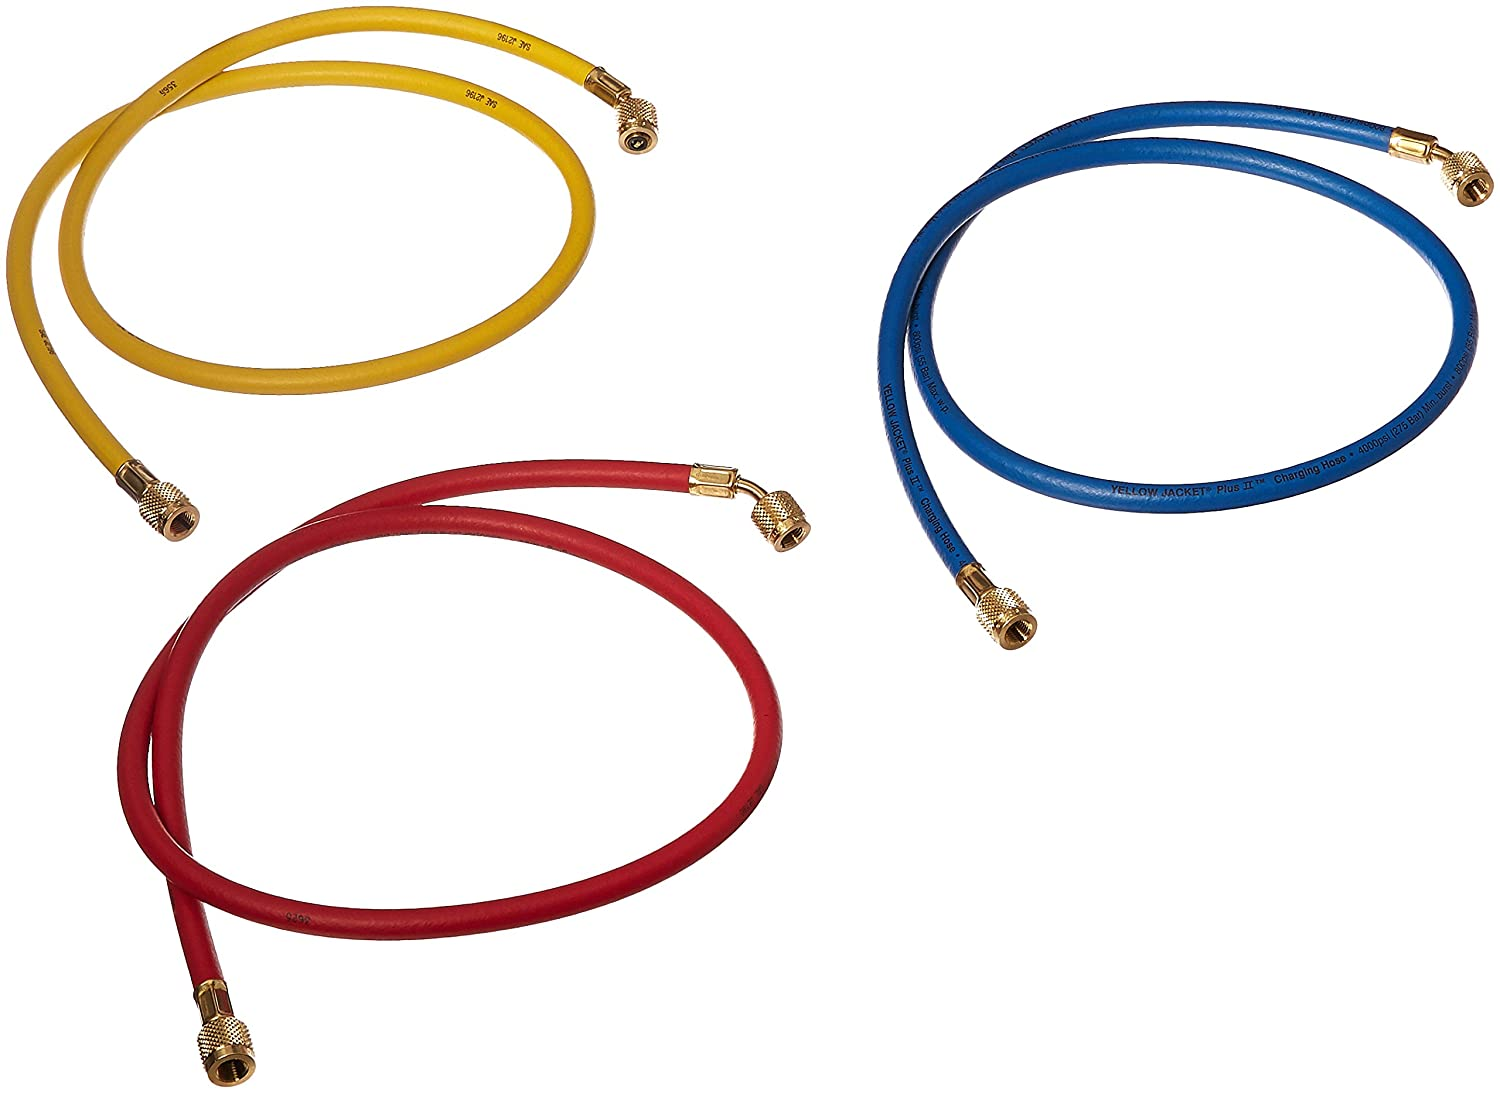 """Yellow Jacket 21984 Plus II Hose Standard 1/4"""" Flare Fittings, 48"""", Red/Yellow/Blue (Pack of 3): Automotive Air Conditioning Repair Tools: Industrial & Scientific"""